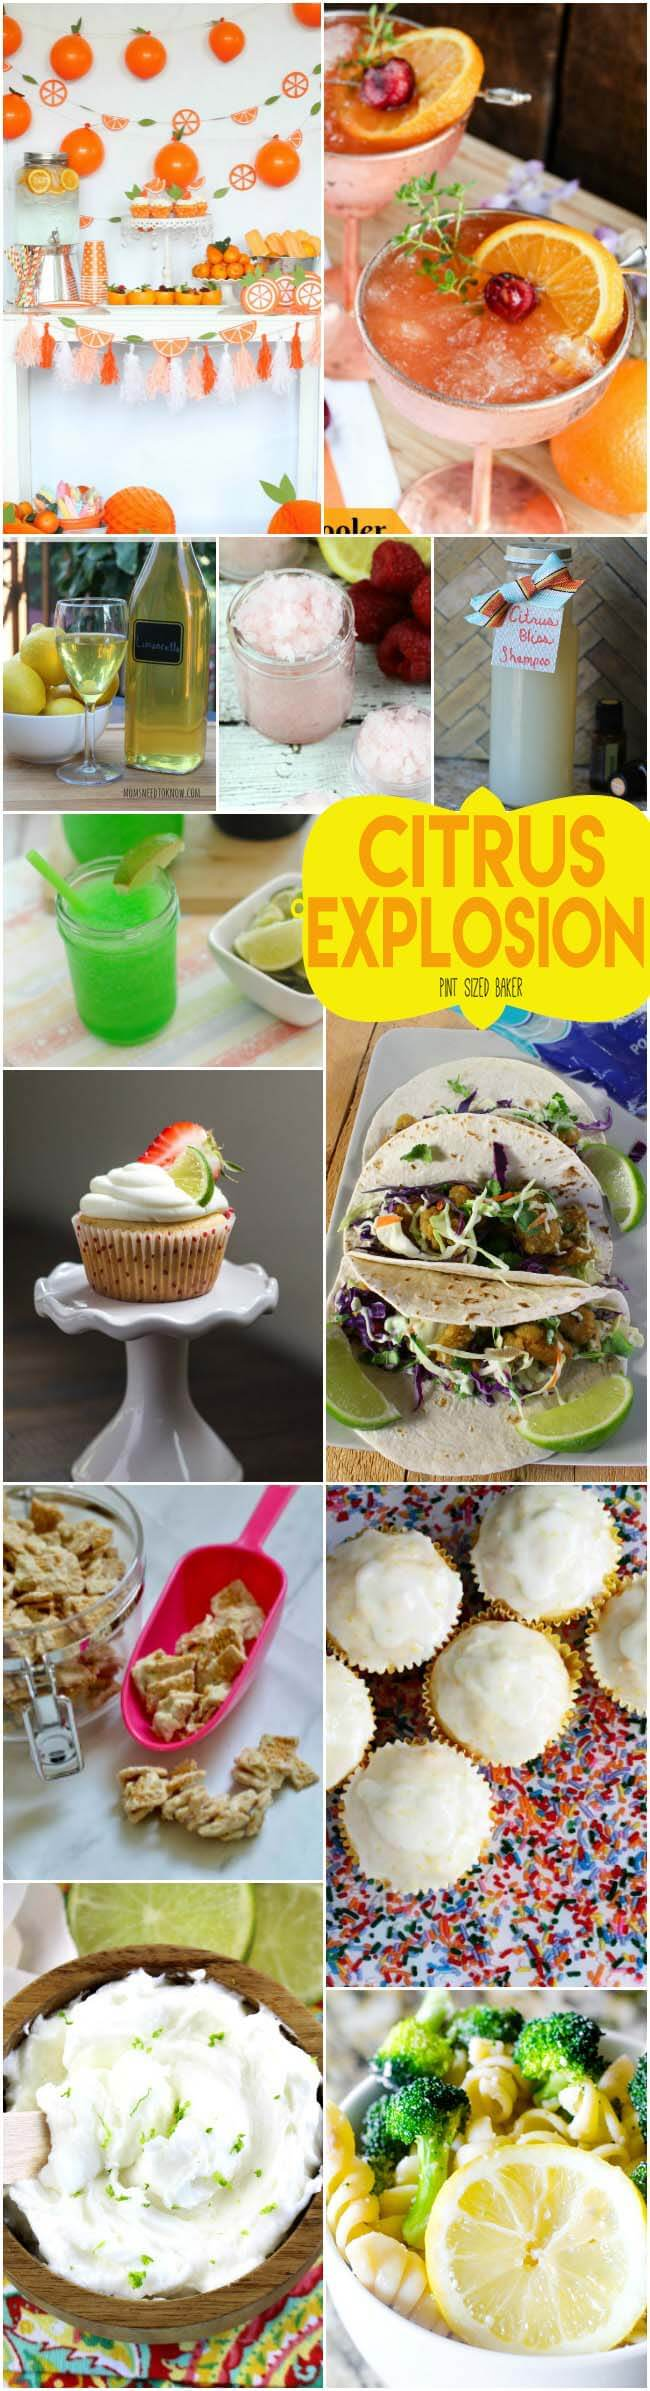 It's a Citrus Explosion - Recipes and DIY projects that are brimming with lemons, limes and oranges. The recipes taste great and the crafts smell wonderful!